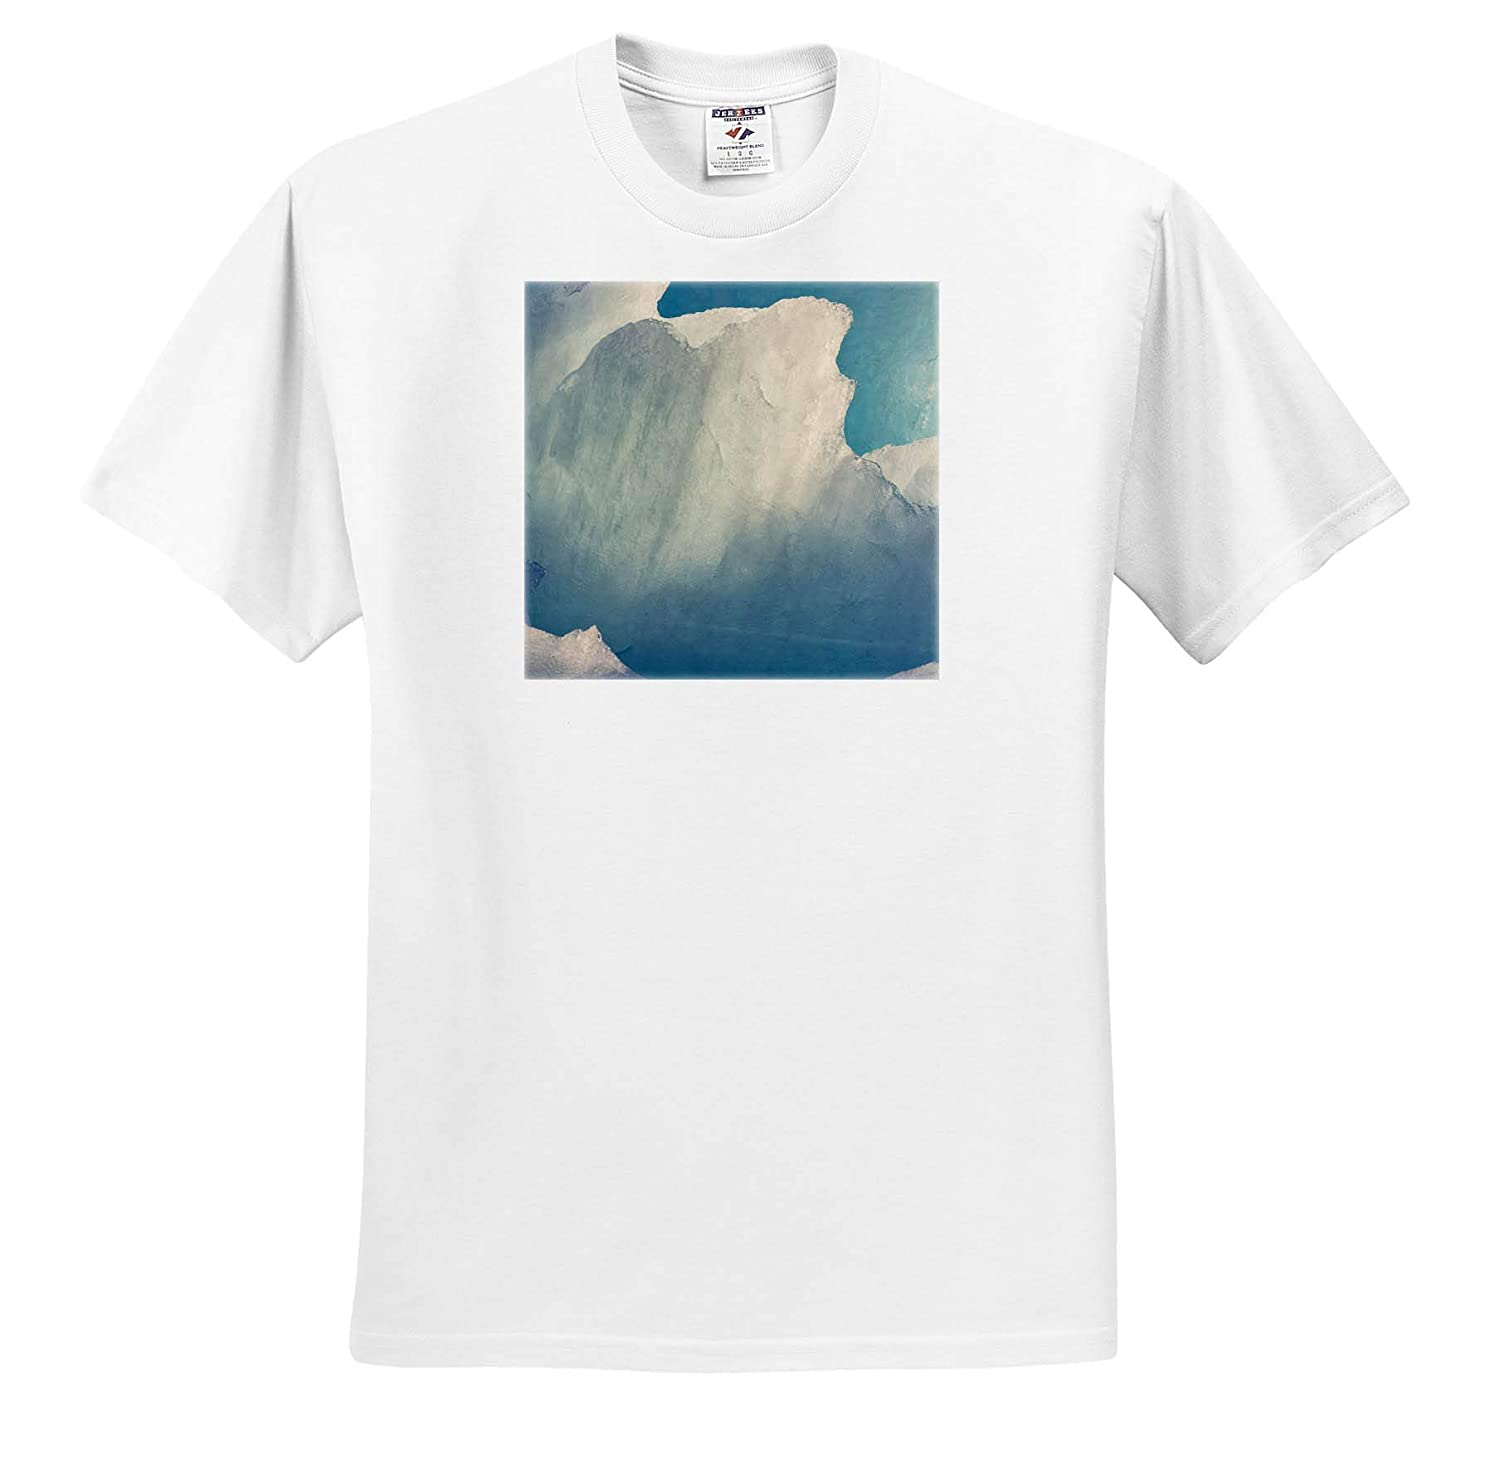 Closeup of Patterns in Icebergs in Greenland - Adult T-Shirt XL 3dRose Danita Delimont Natural Patterns ts/_313888